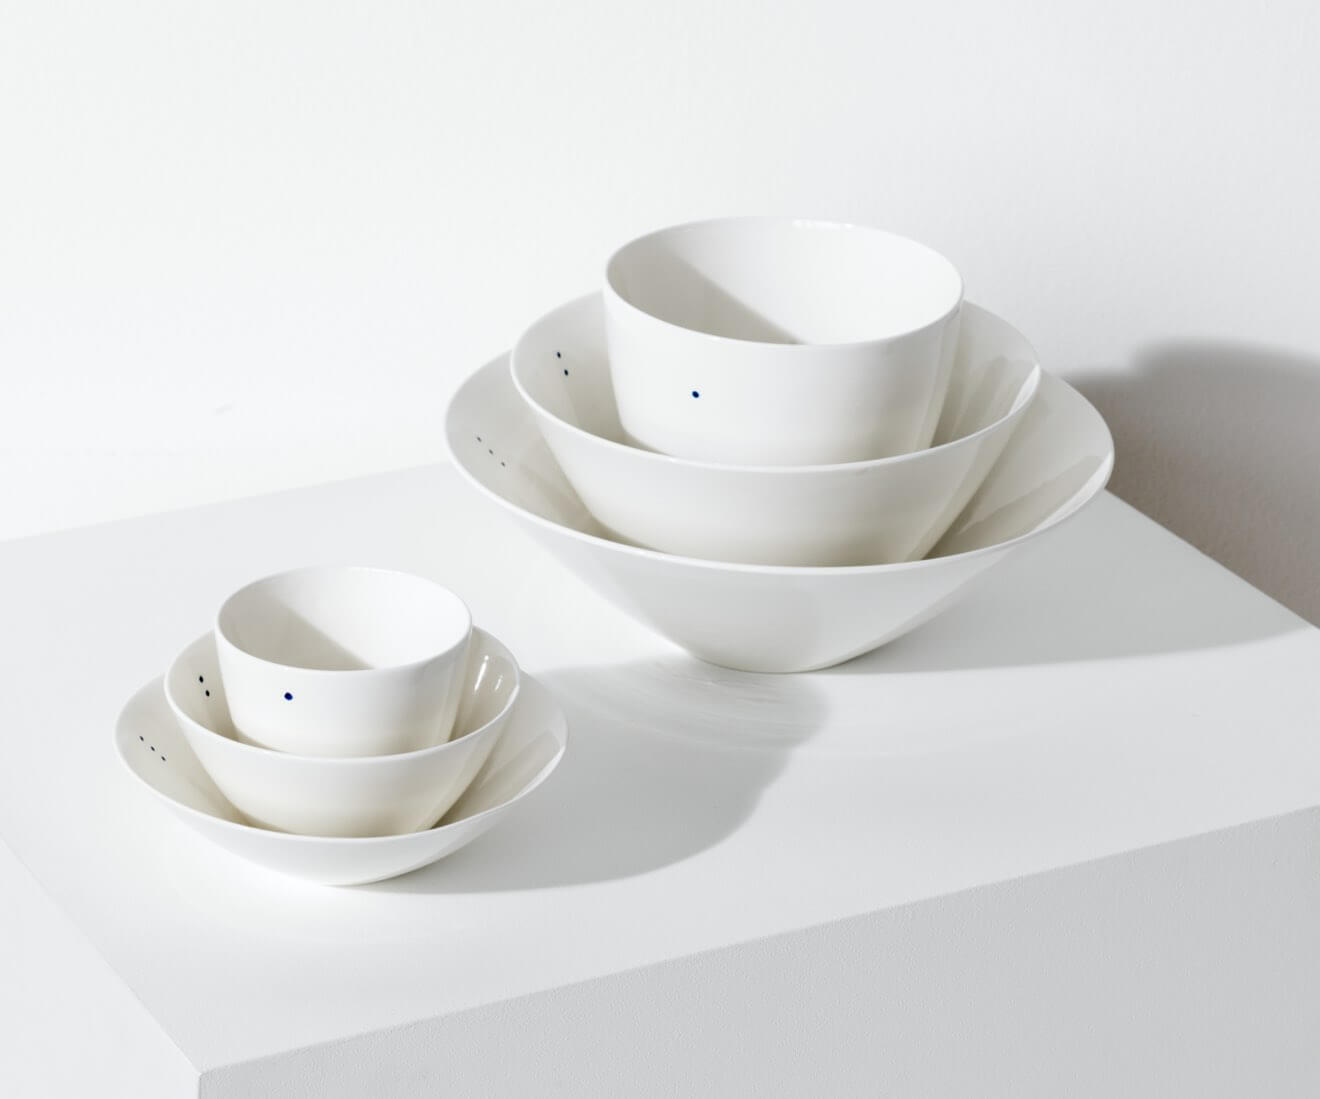 Motarasu Products - Shiro bowls in 3 forms in 2 sizes, 1-2-3 dots by Stilleben